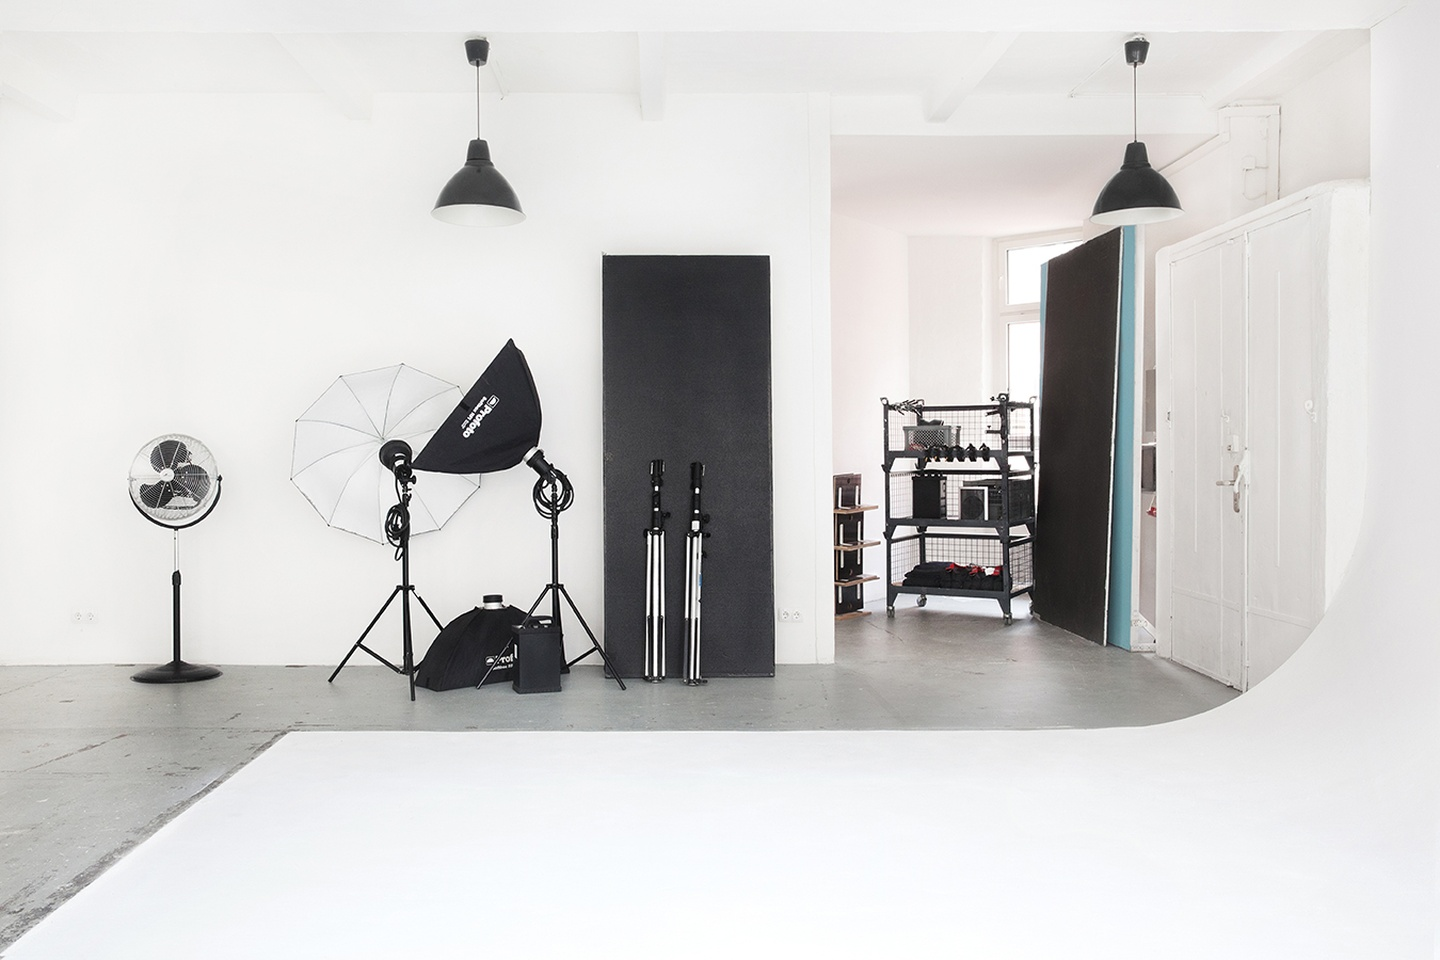 Berlin workshop spaces Foto Studio Studio Chérie / Studio 1 image 4